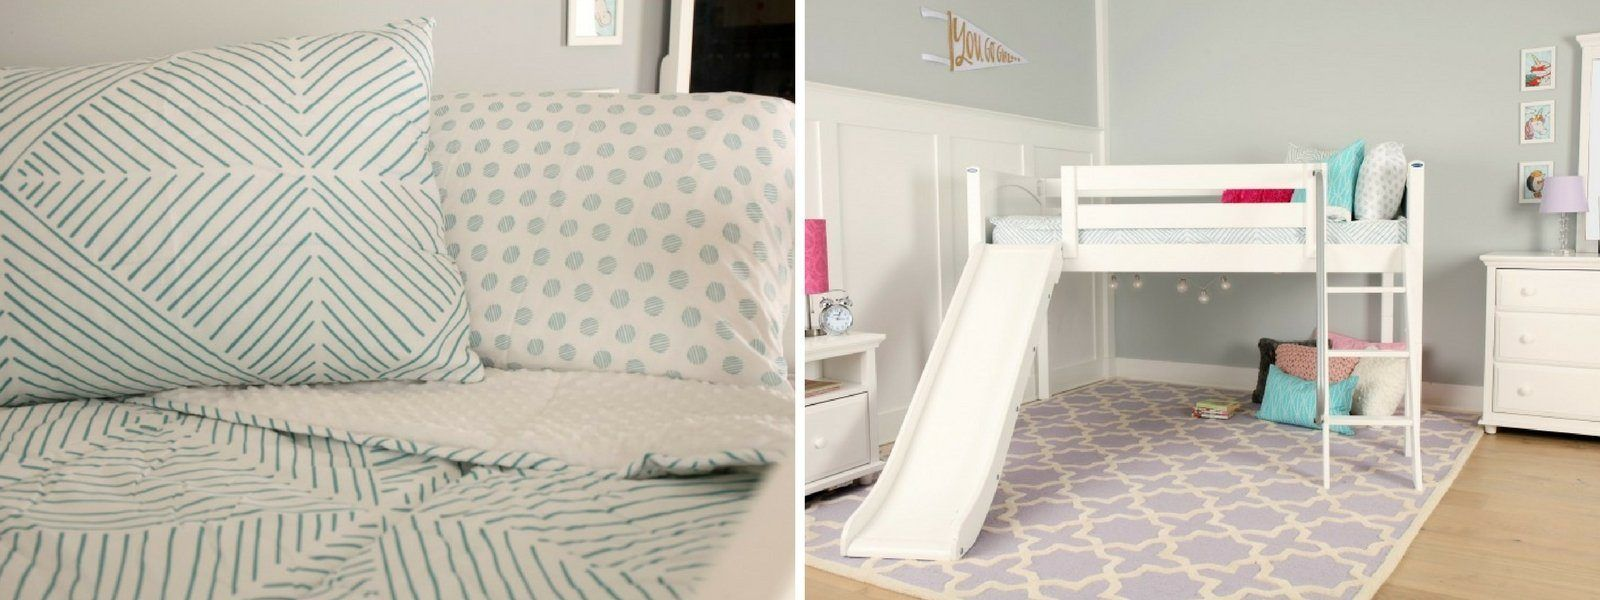 GIVEAWAY! Win a Slide Bed and Beddy's Bedding Set!